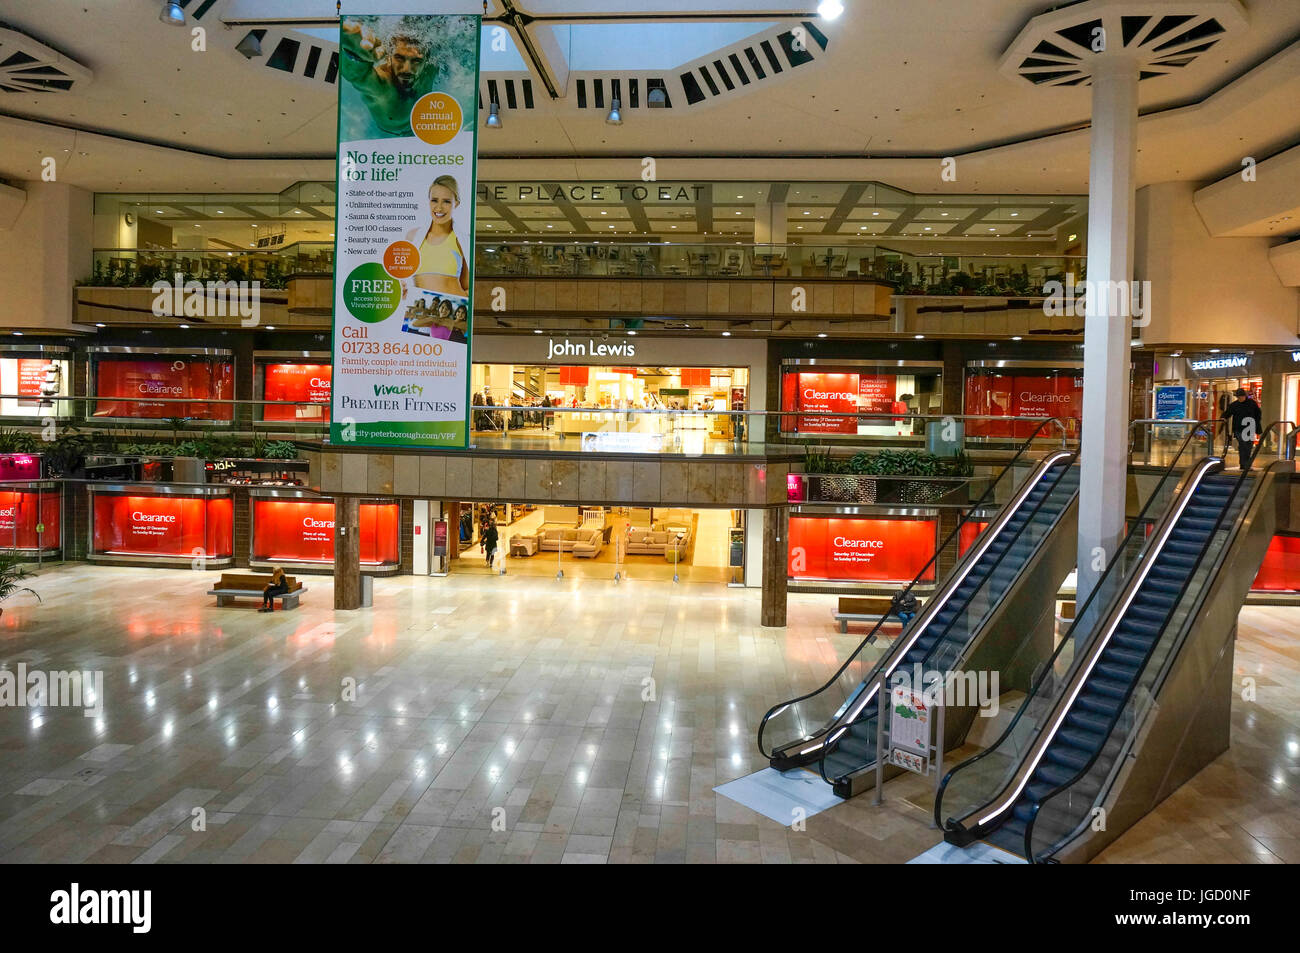 Front entrance to the John Lewis store in Queensgate, Peterborough, England, UK. - Stock Image